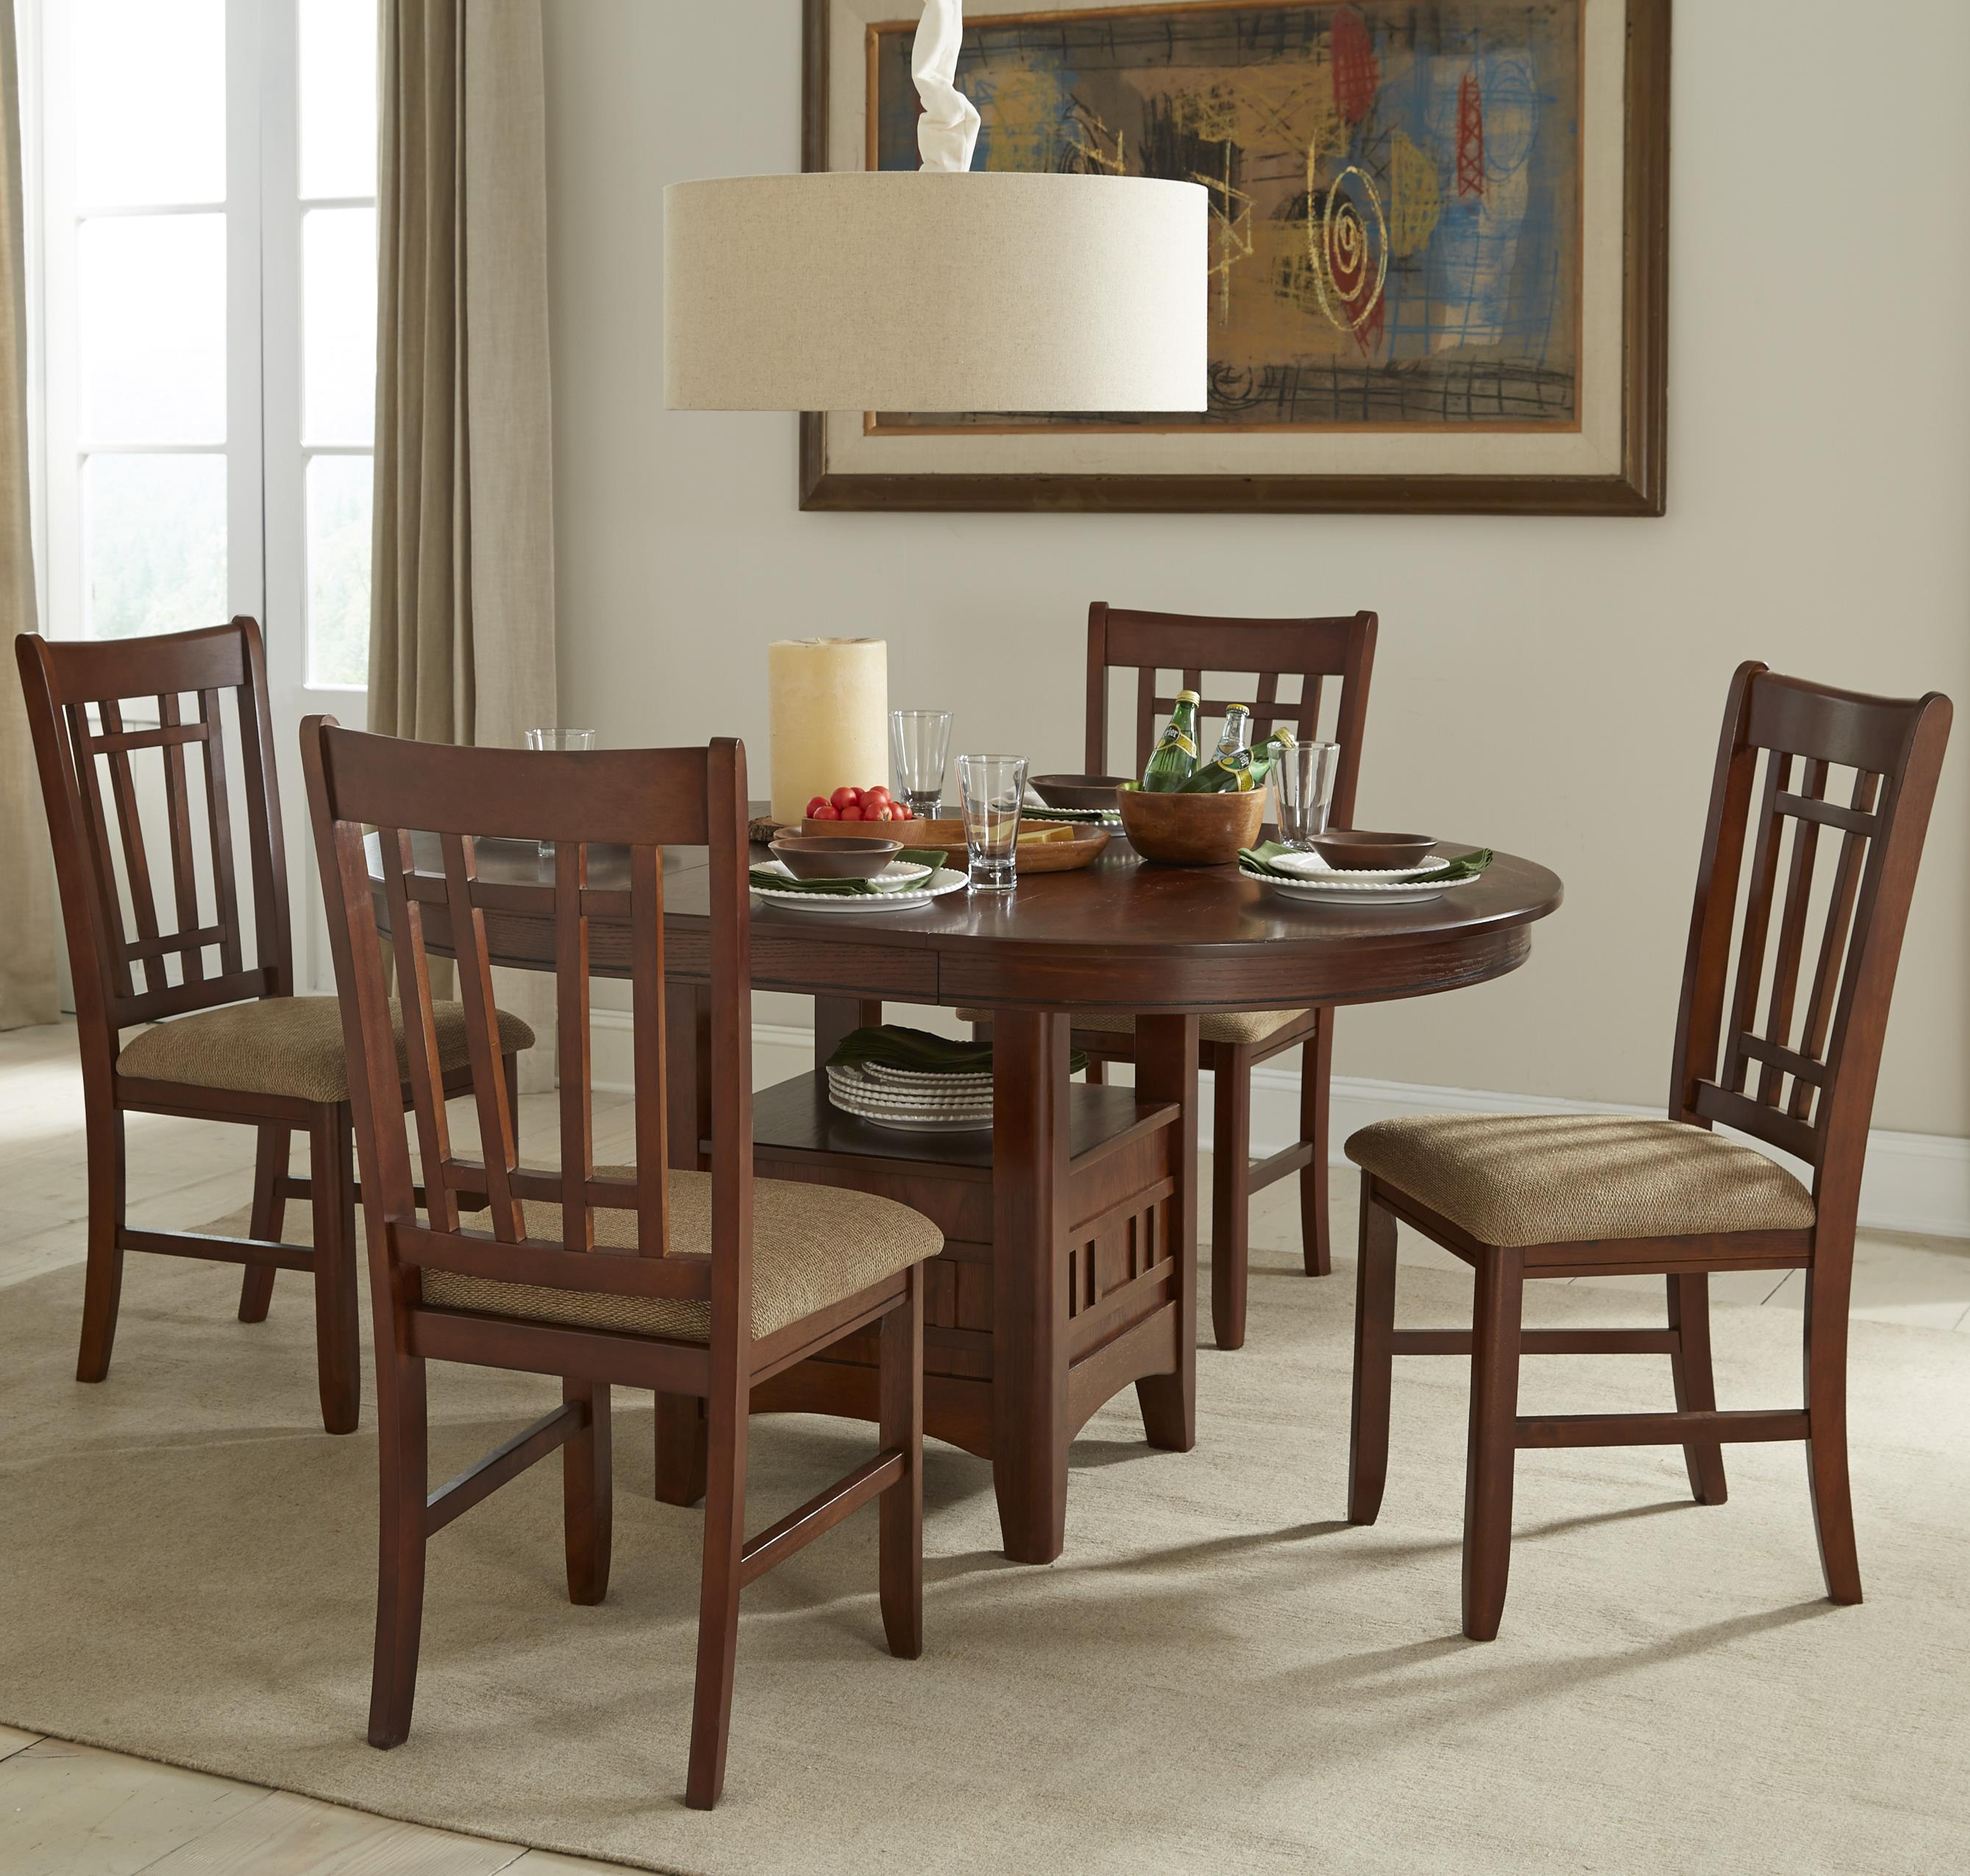 Intercon Mission Casuals 5 Piece Table & Chair Set - Item Number: MI-TA-4260-DMI-BSE+TOP+4x850C-DMI